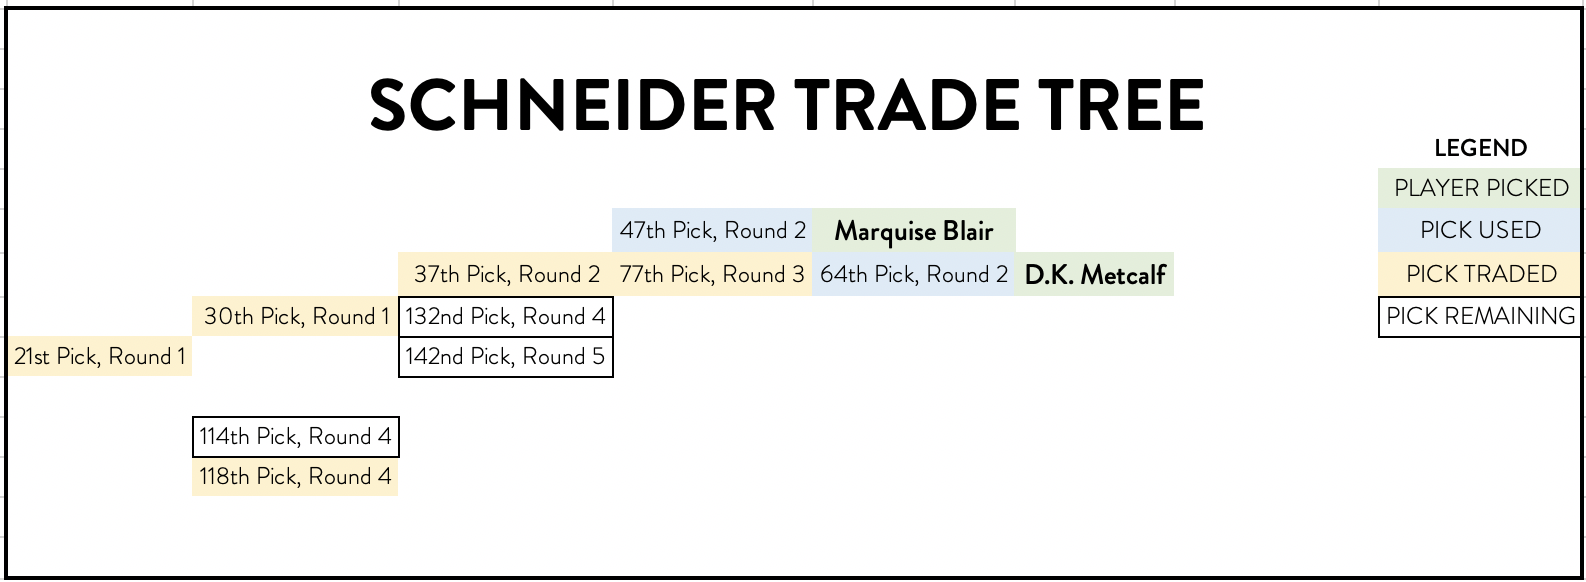 Schneider trade tree showing how he turned the 21st pick into Marquise Blair, D.K. Metcalf, and three additional picks for day three in the draft